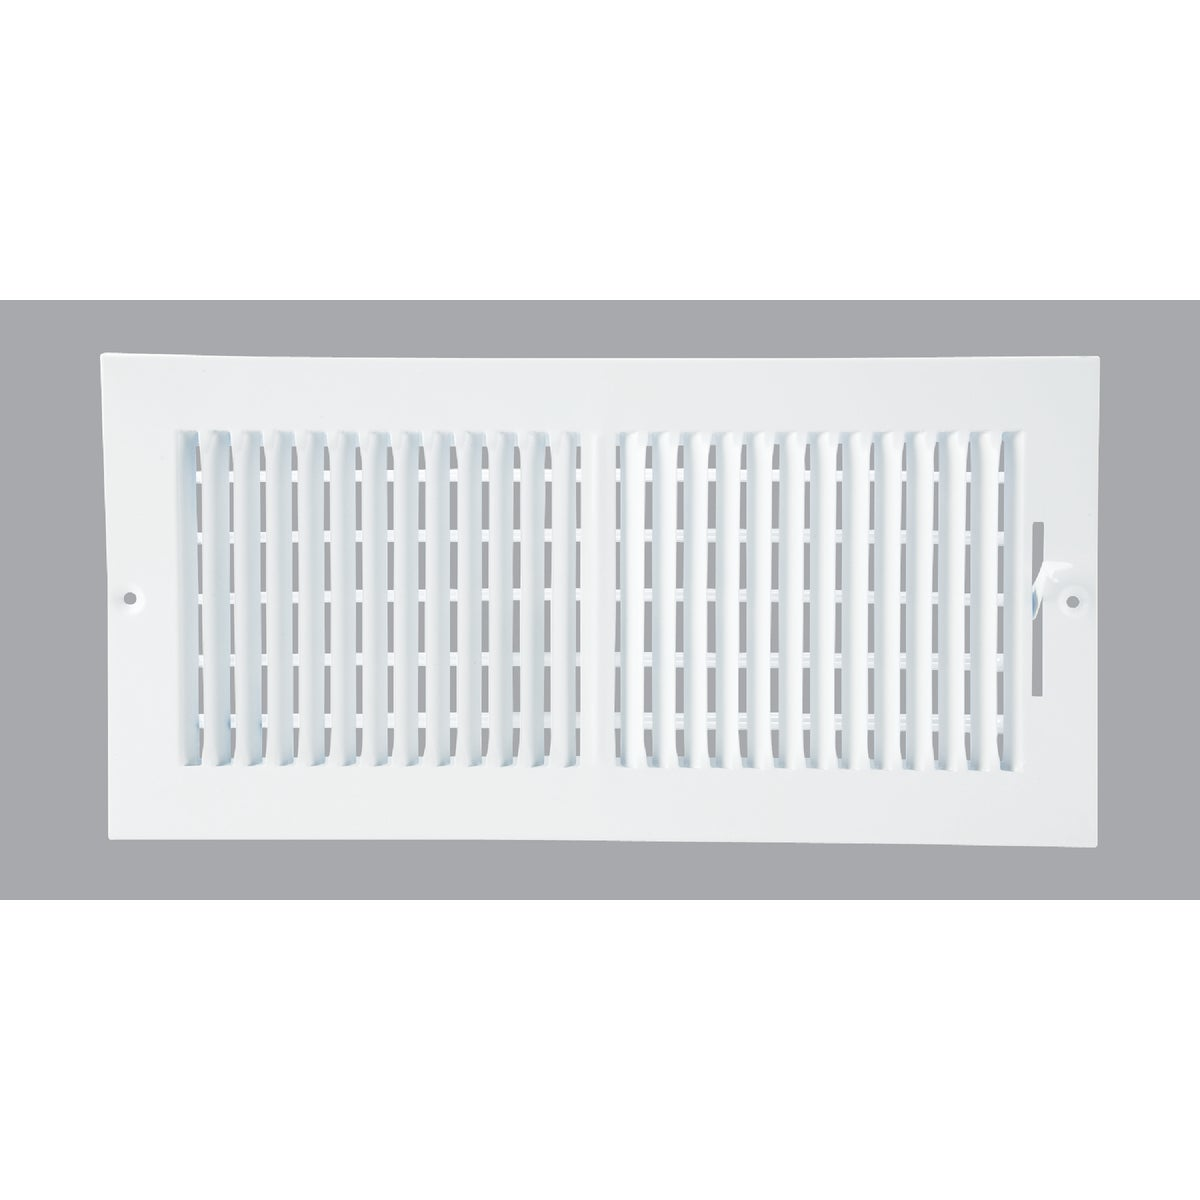 Home Impression 2-Way Wall Register, 2SW1406WH-B